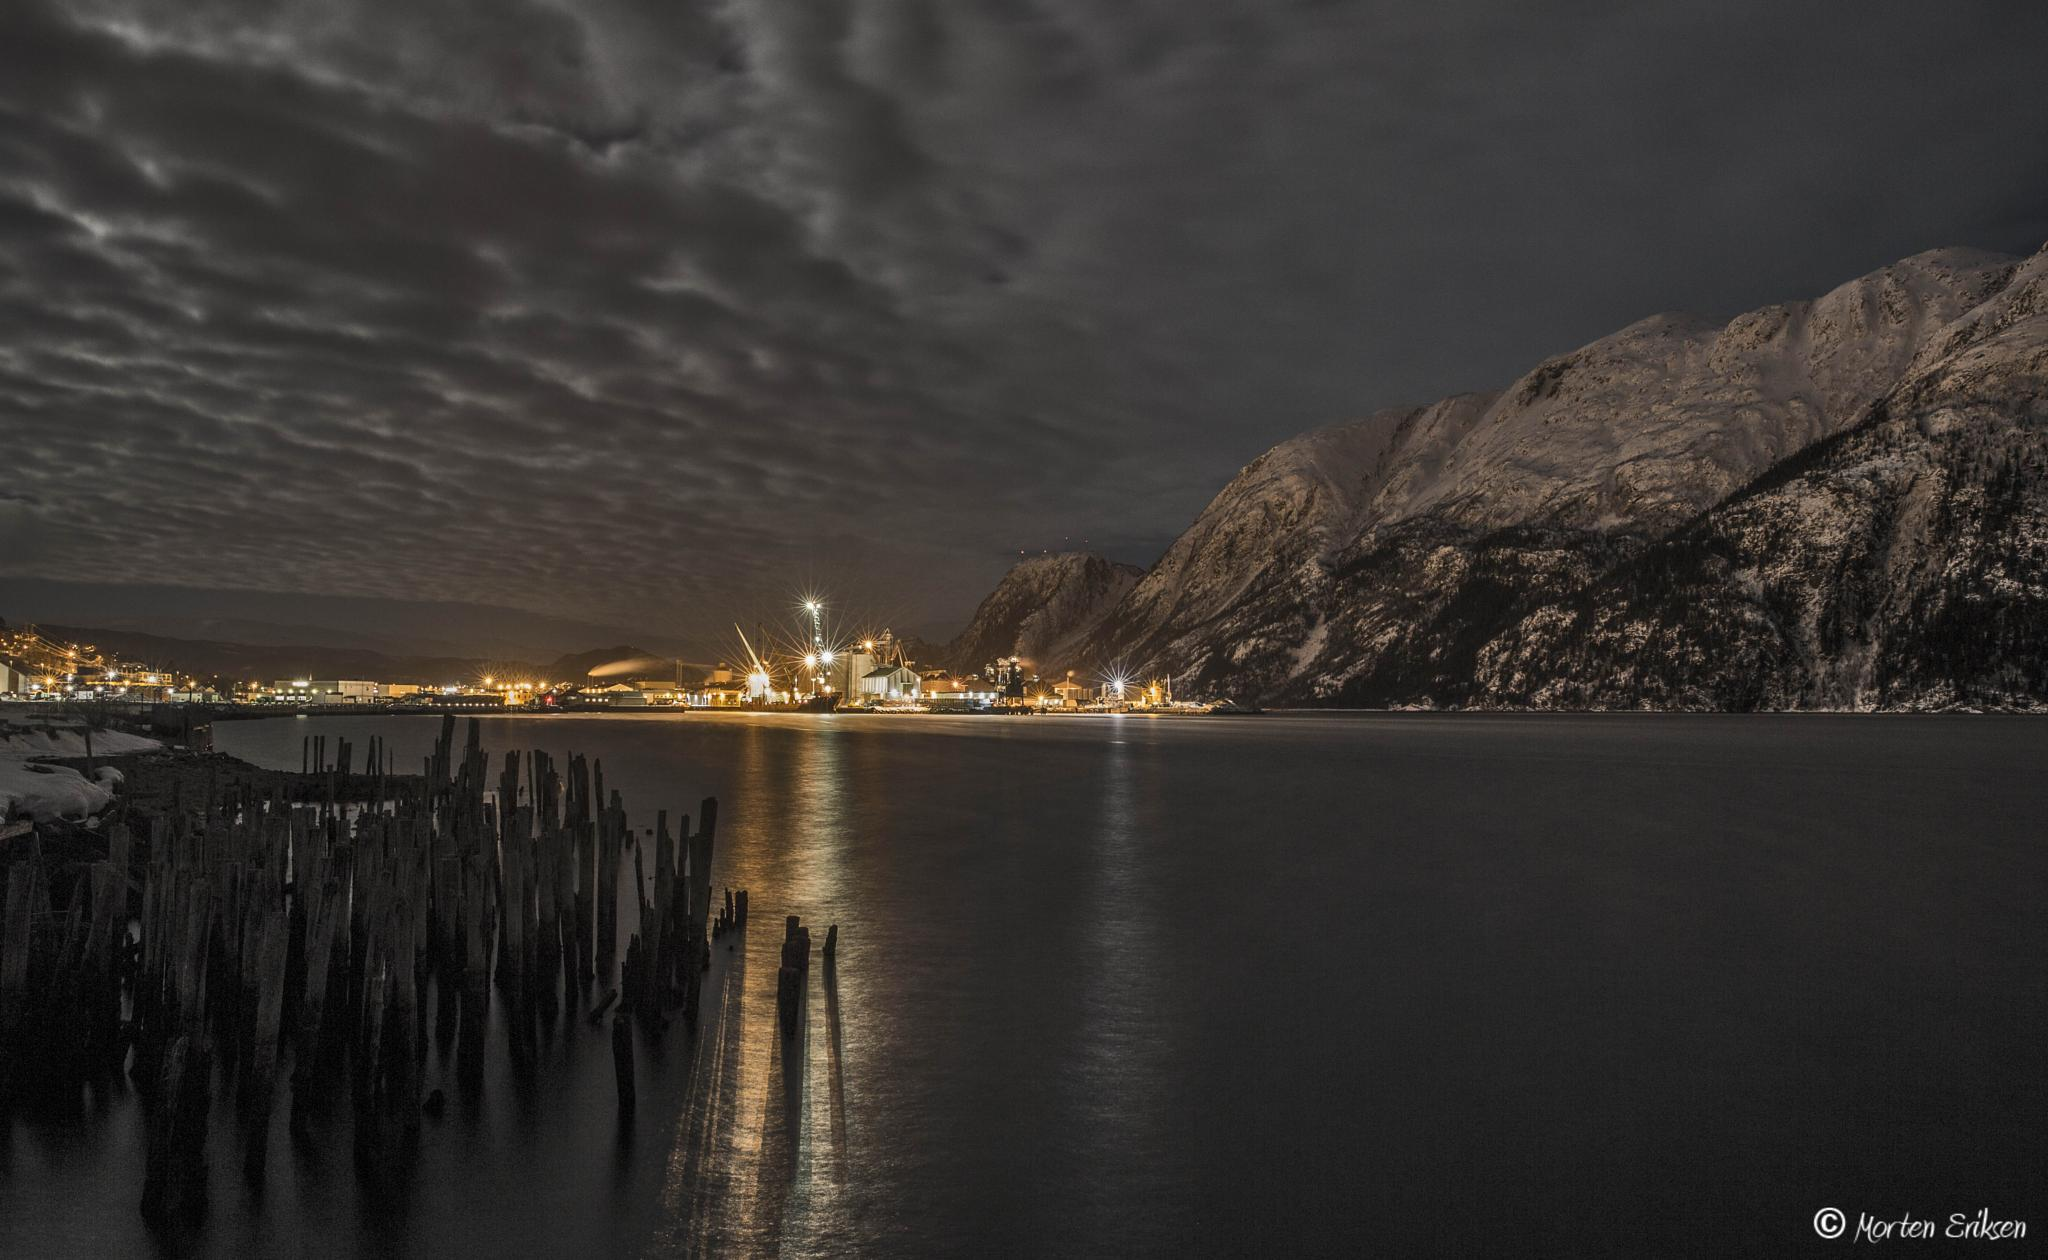 Harbour in Mosjøen, Norway by Morten Eriksen